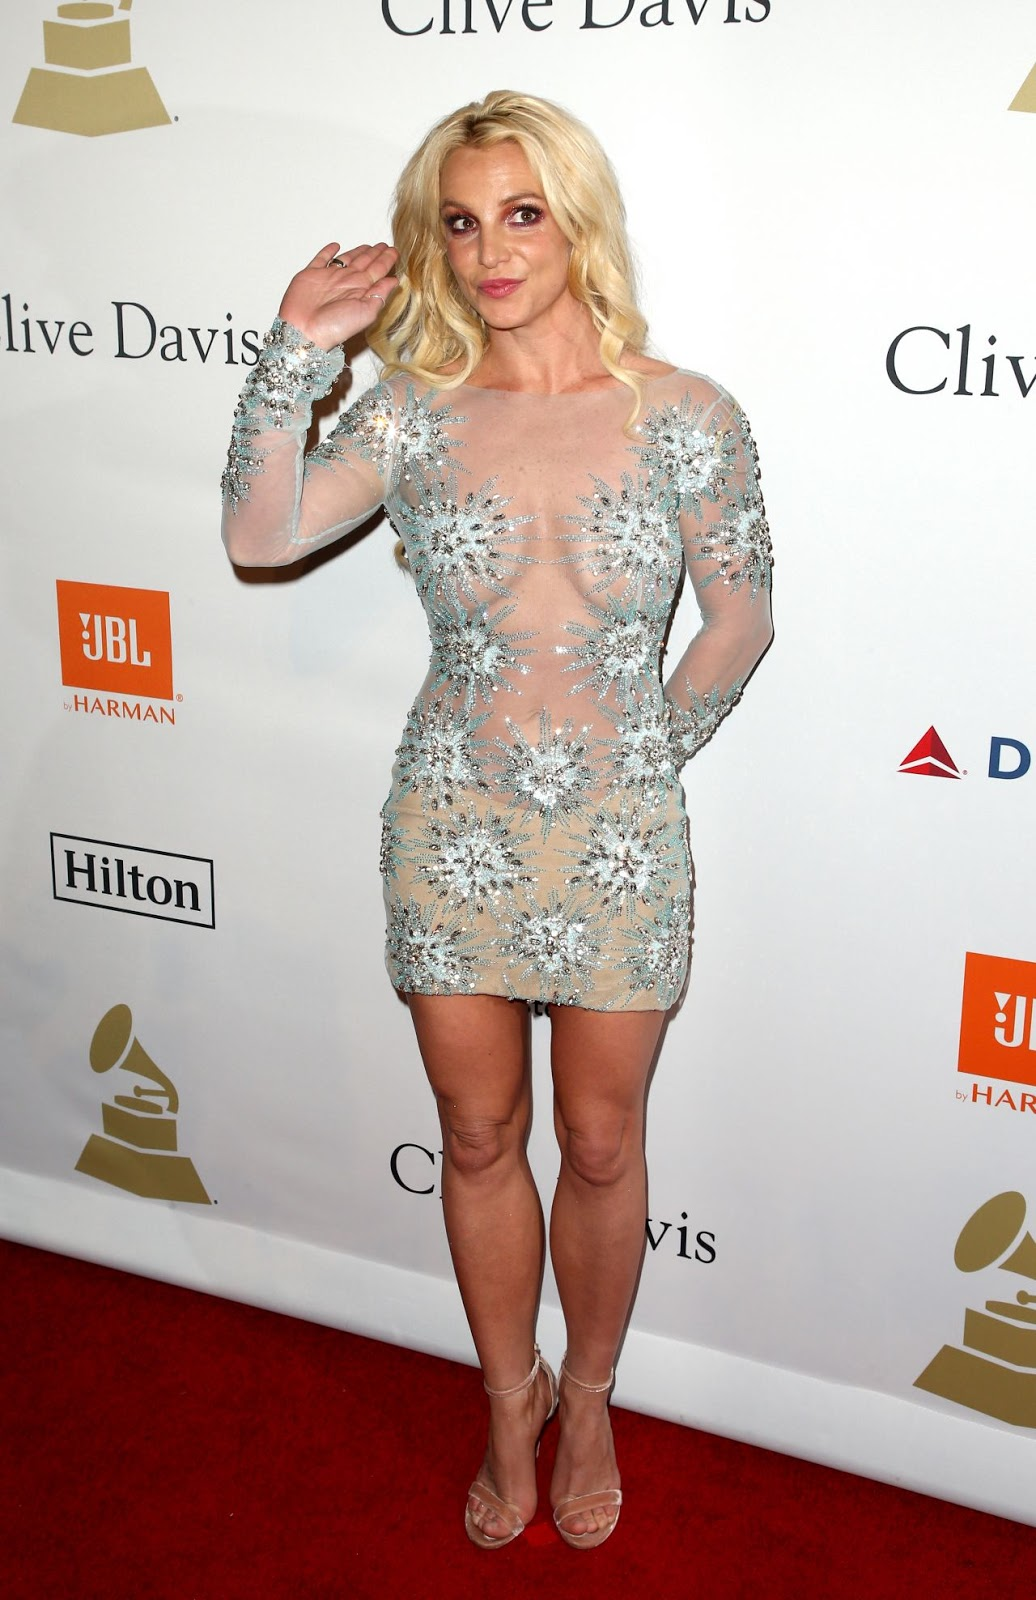 Britney Spears – Clive Davis Pre-Grammy 2017 Party in Beverly Hills